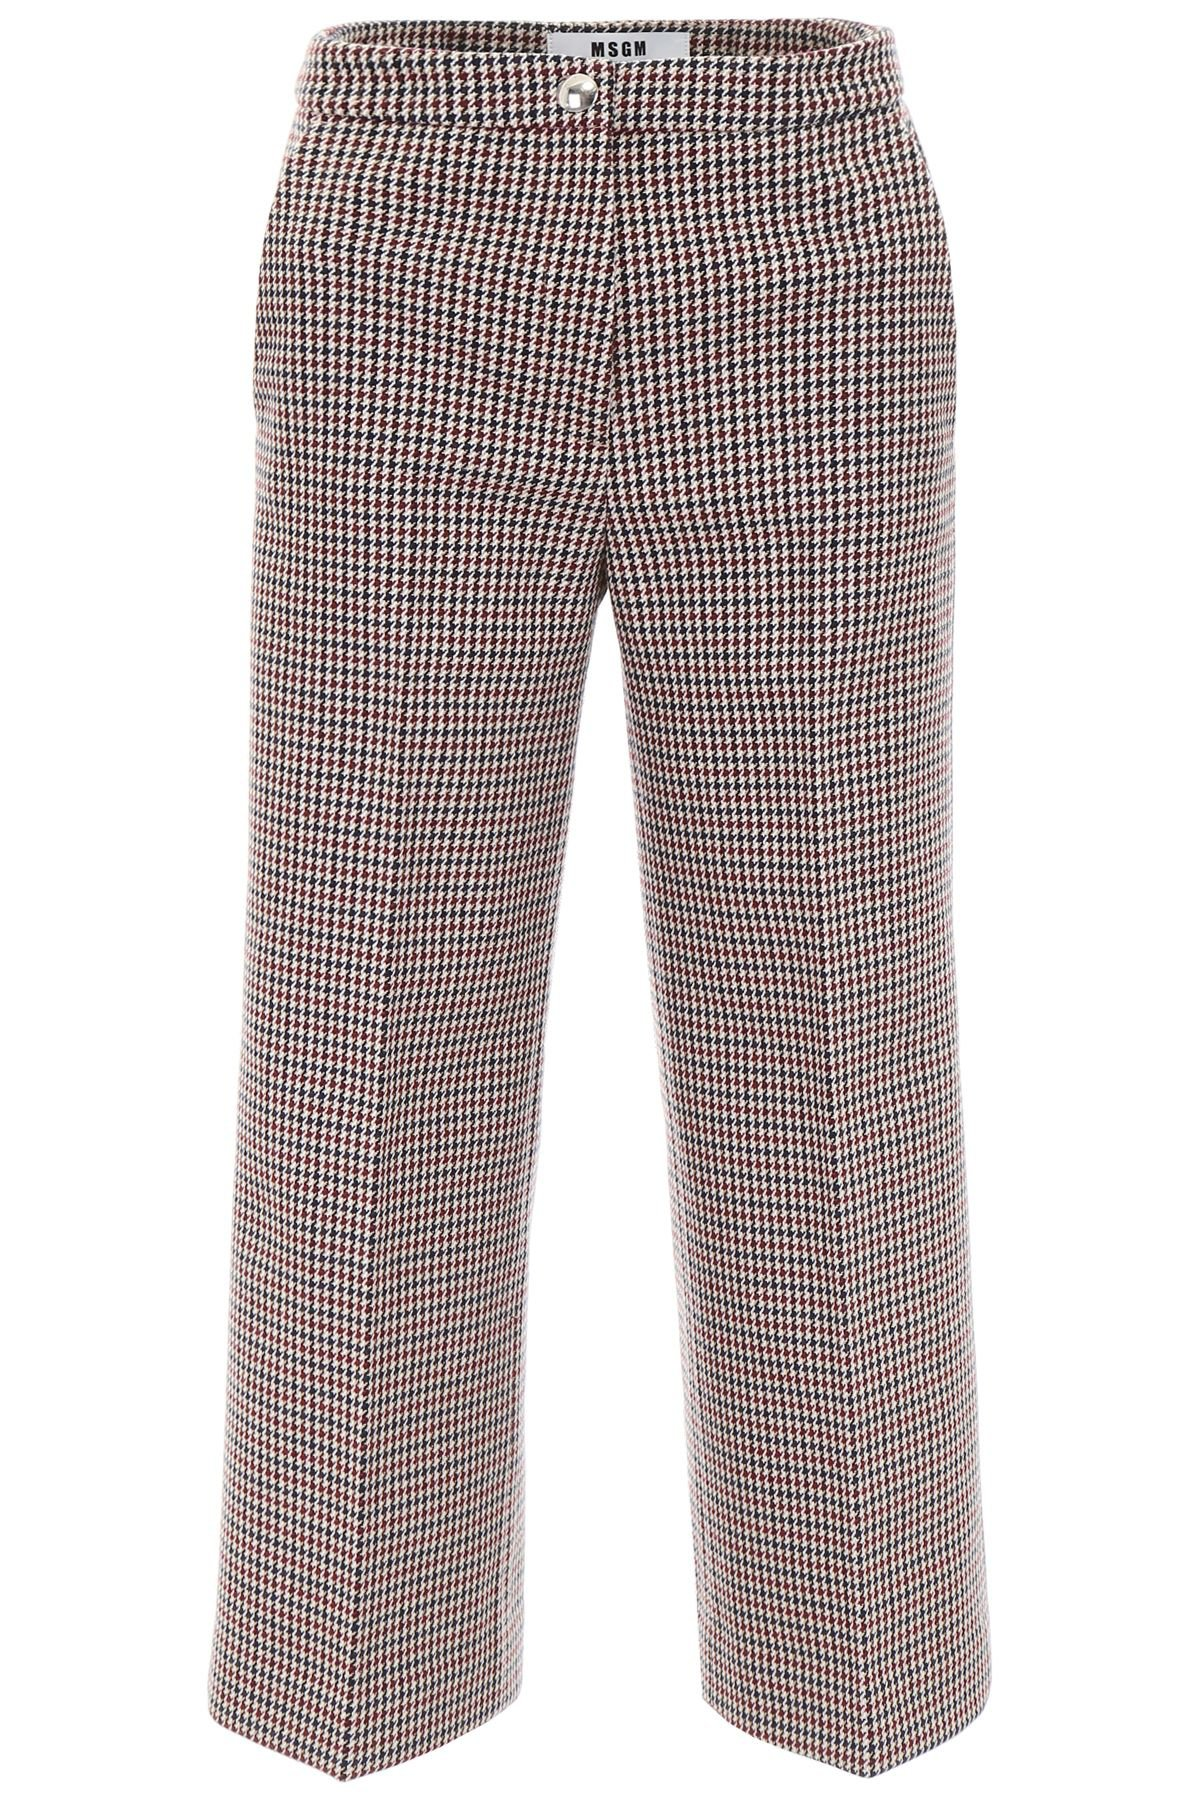 MSGM Cropped Houndstooth Trousers